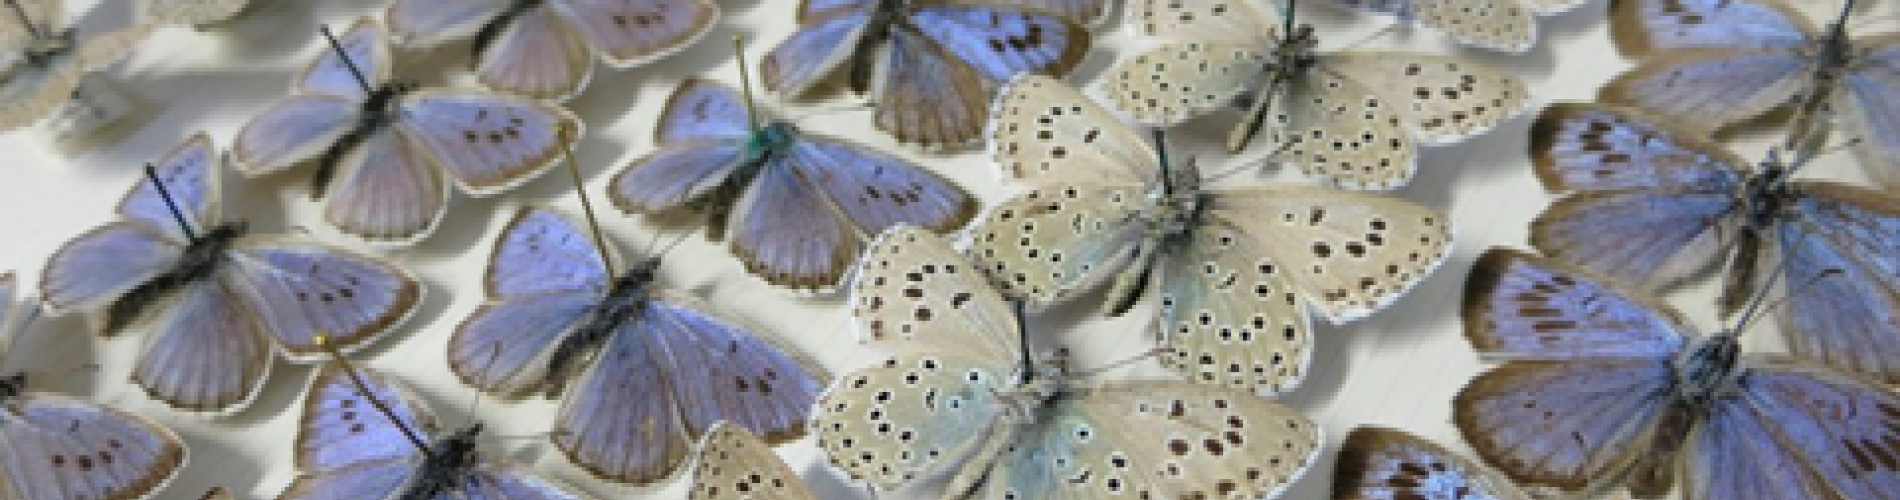 2 Butterfly Picture